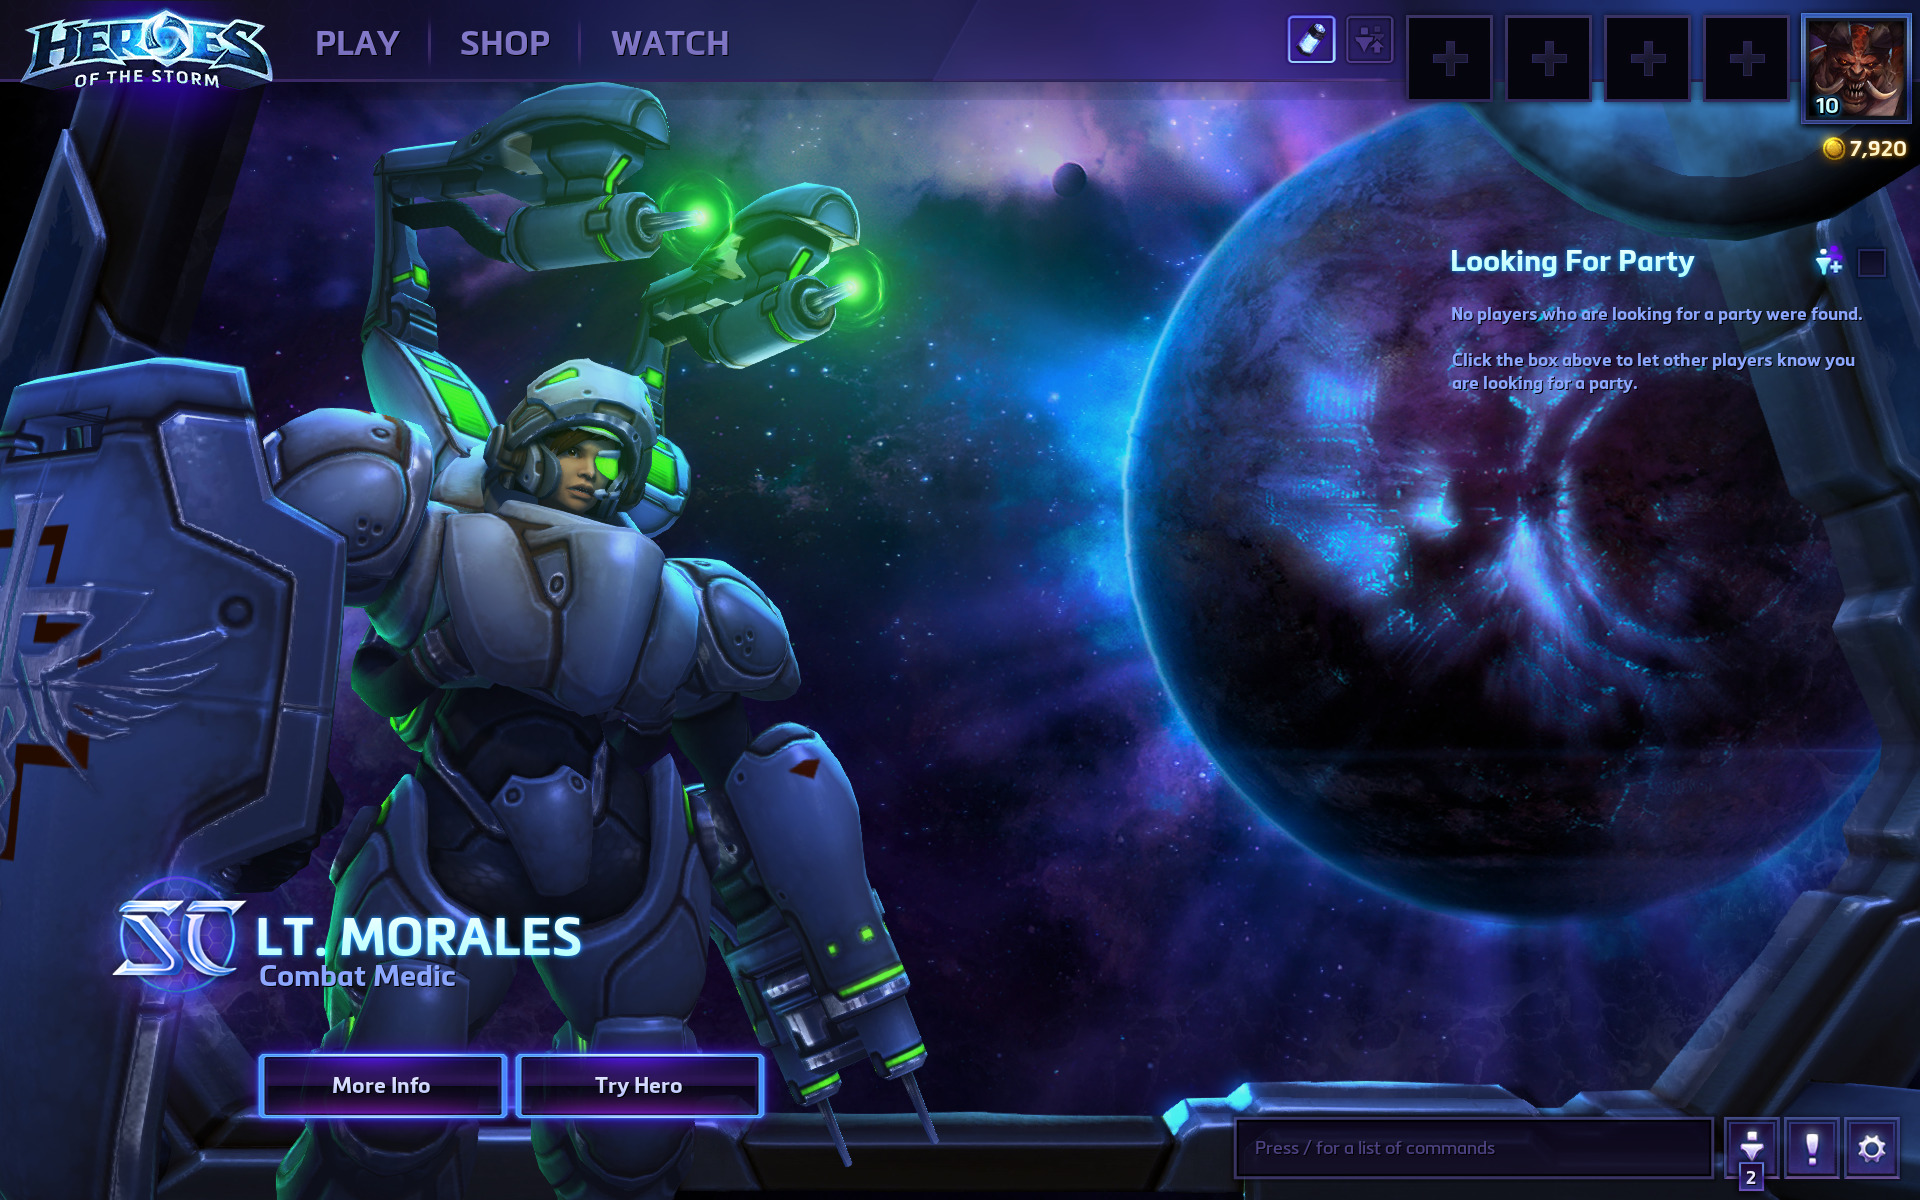 The StarCraft Medic's New Lines In Heroes Of The Storm Are Less Flirty